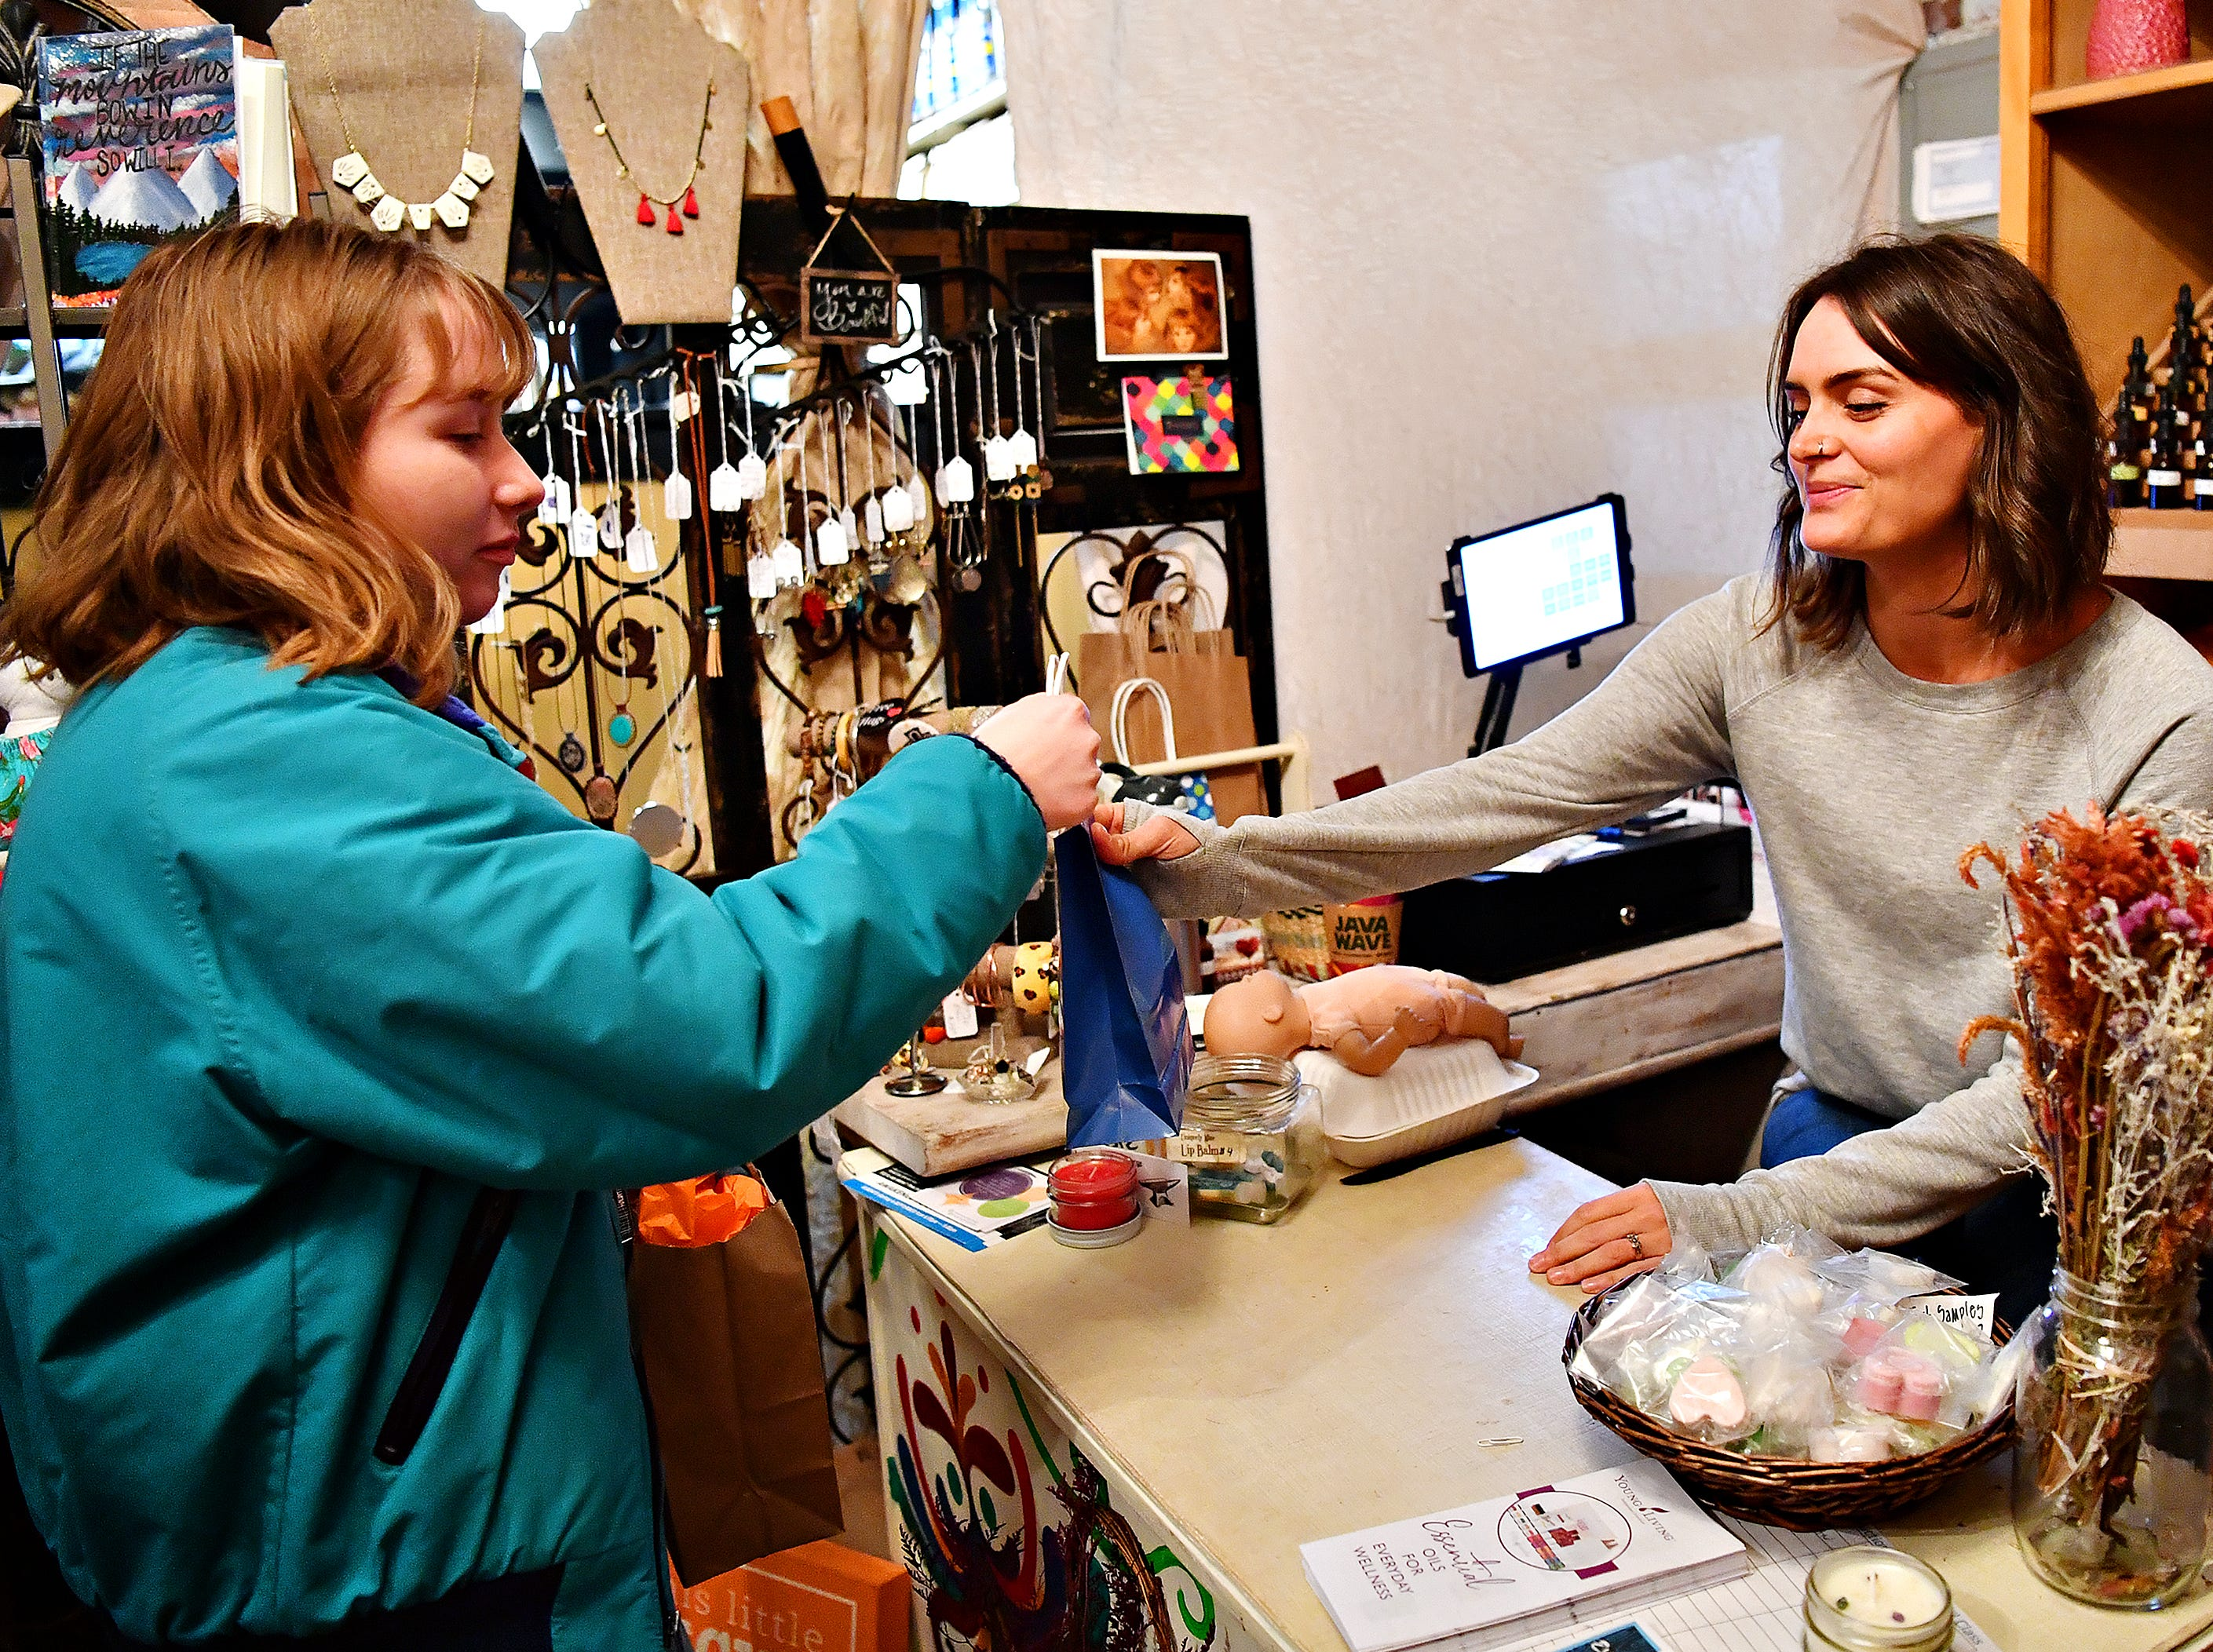 Store owner Lindsey Dohm, right, hands a shopping bag to Brooke Schwartz, 17, of York Township, at this little light of mine during Small Business Saturday at Central Market in York City, Saturday, Nov. 24, 2018. Dawn J. Sagert photo